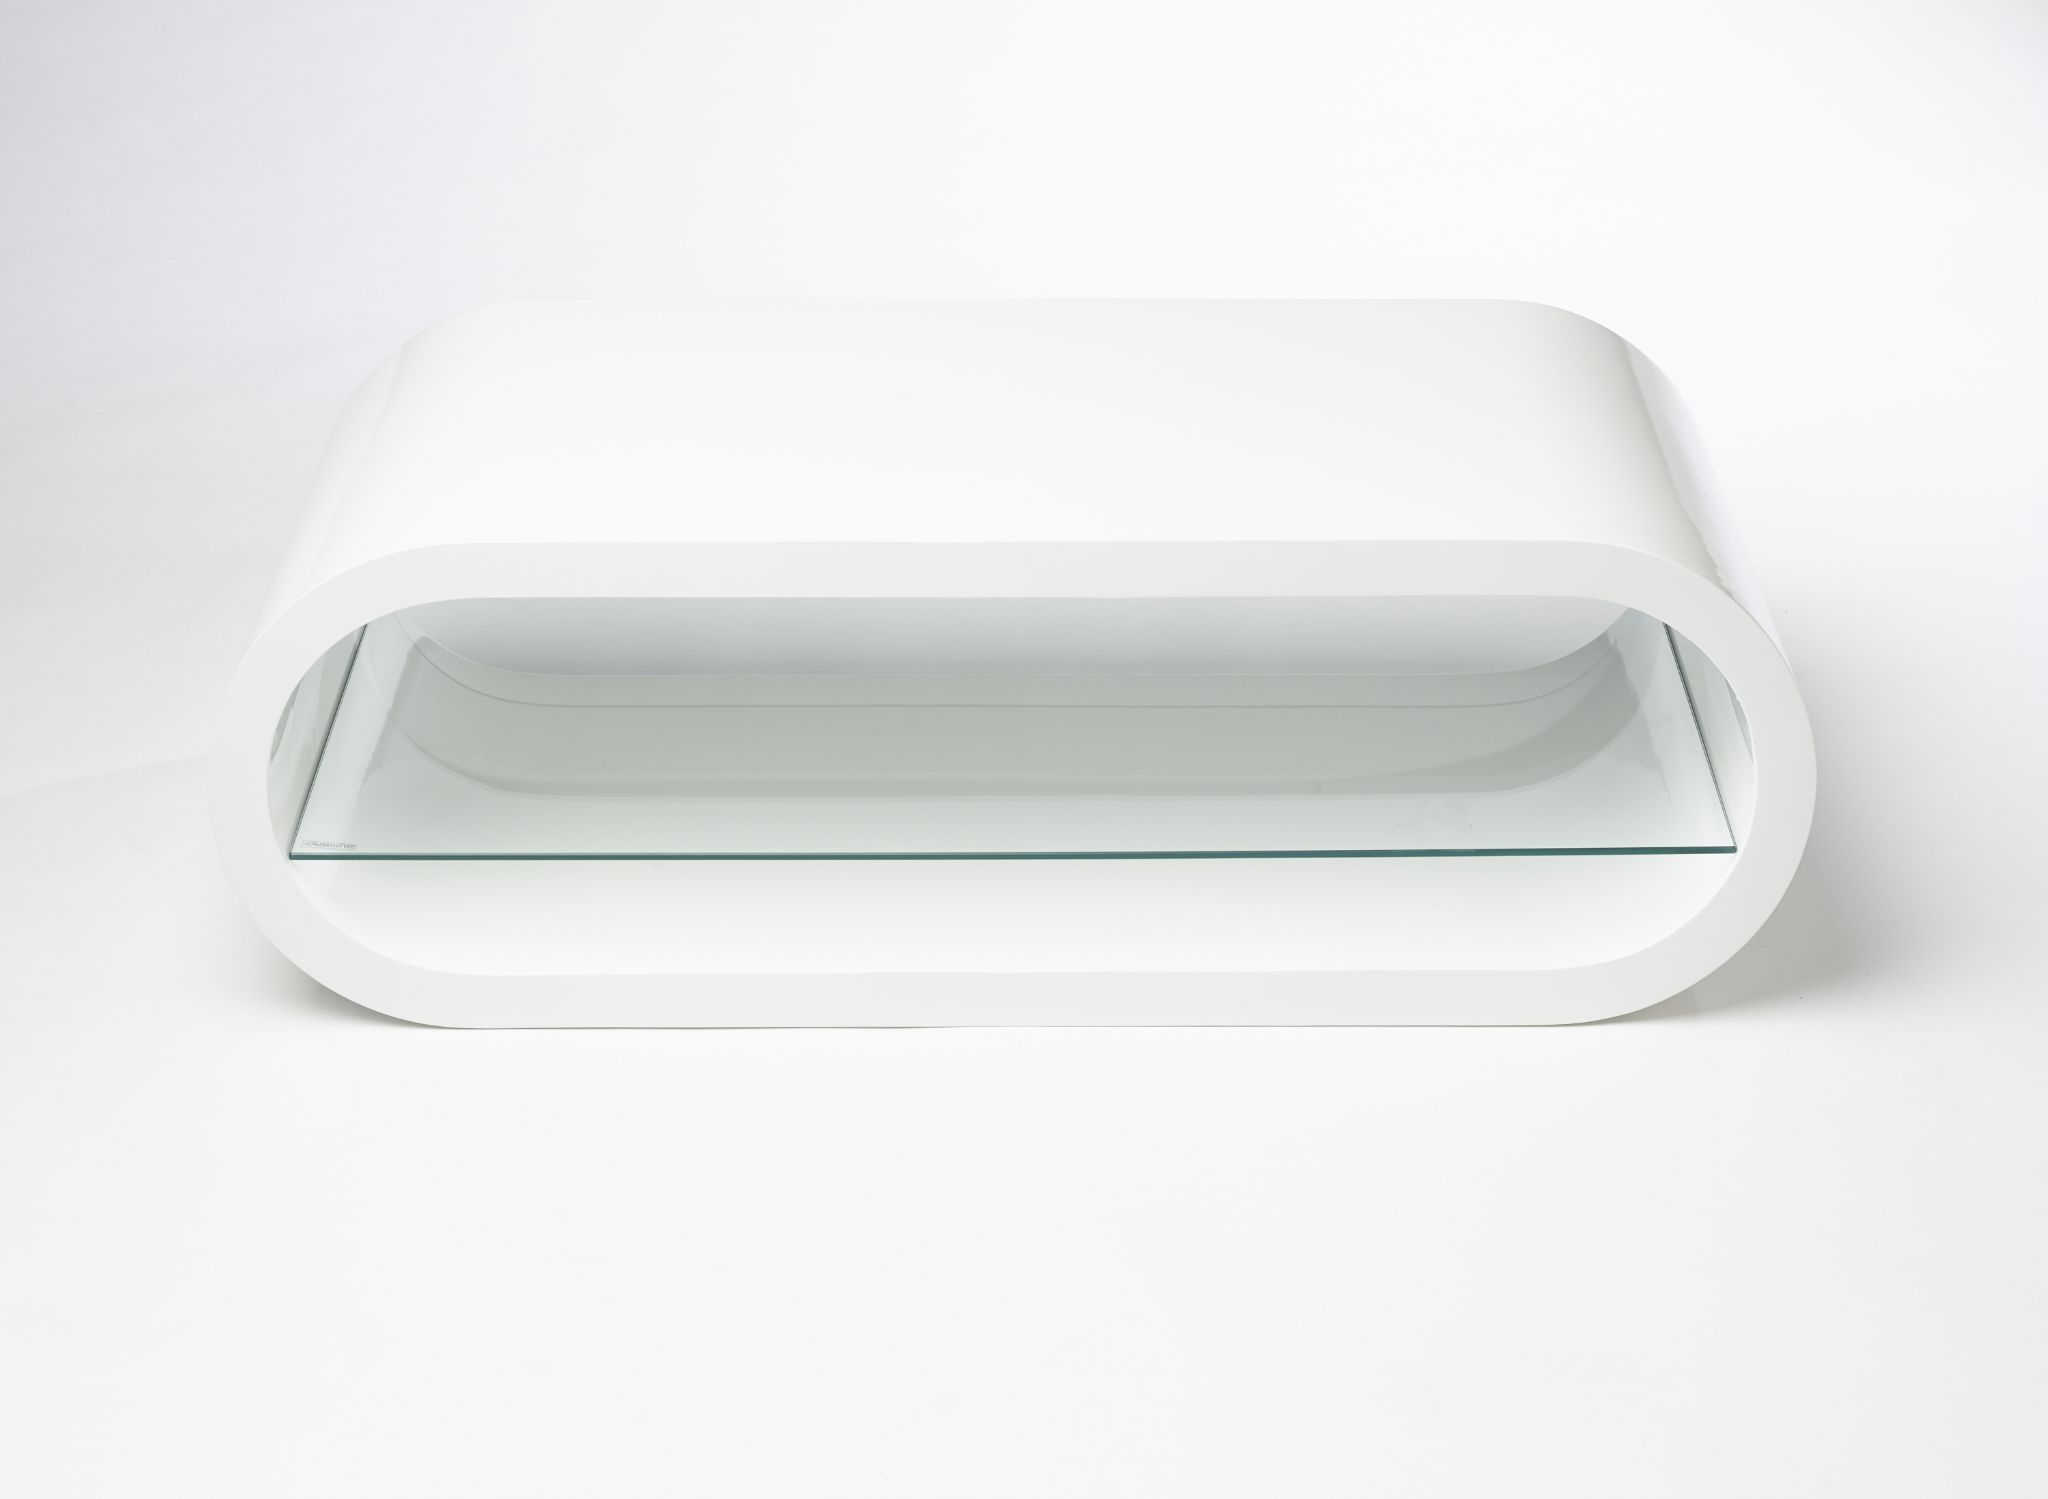 Modern Designer High Gloss Oval Tv Stand Cabinet High White Gloss Pertaining To Trendy White Gloss Oval Tv Stands (View 2 of 20)